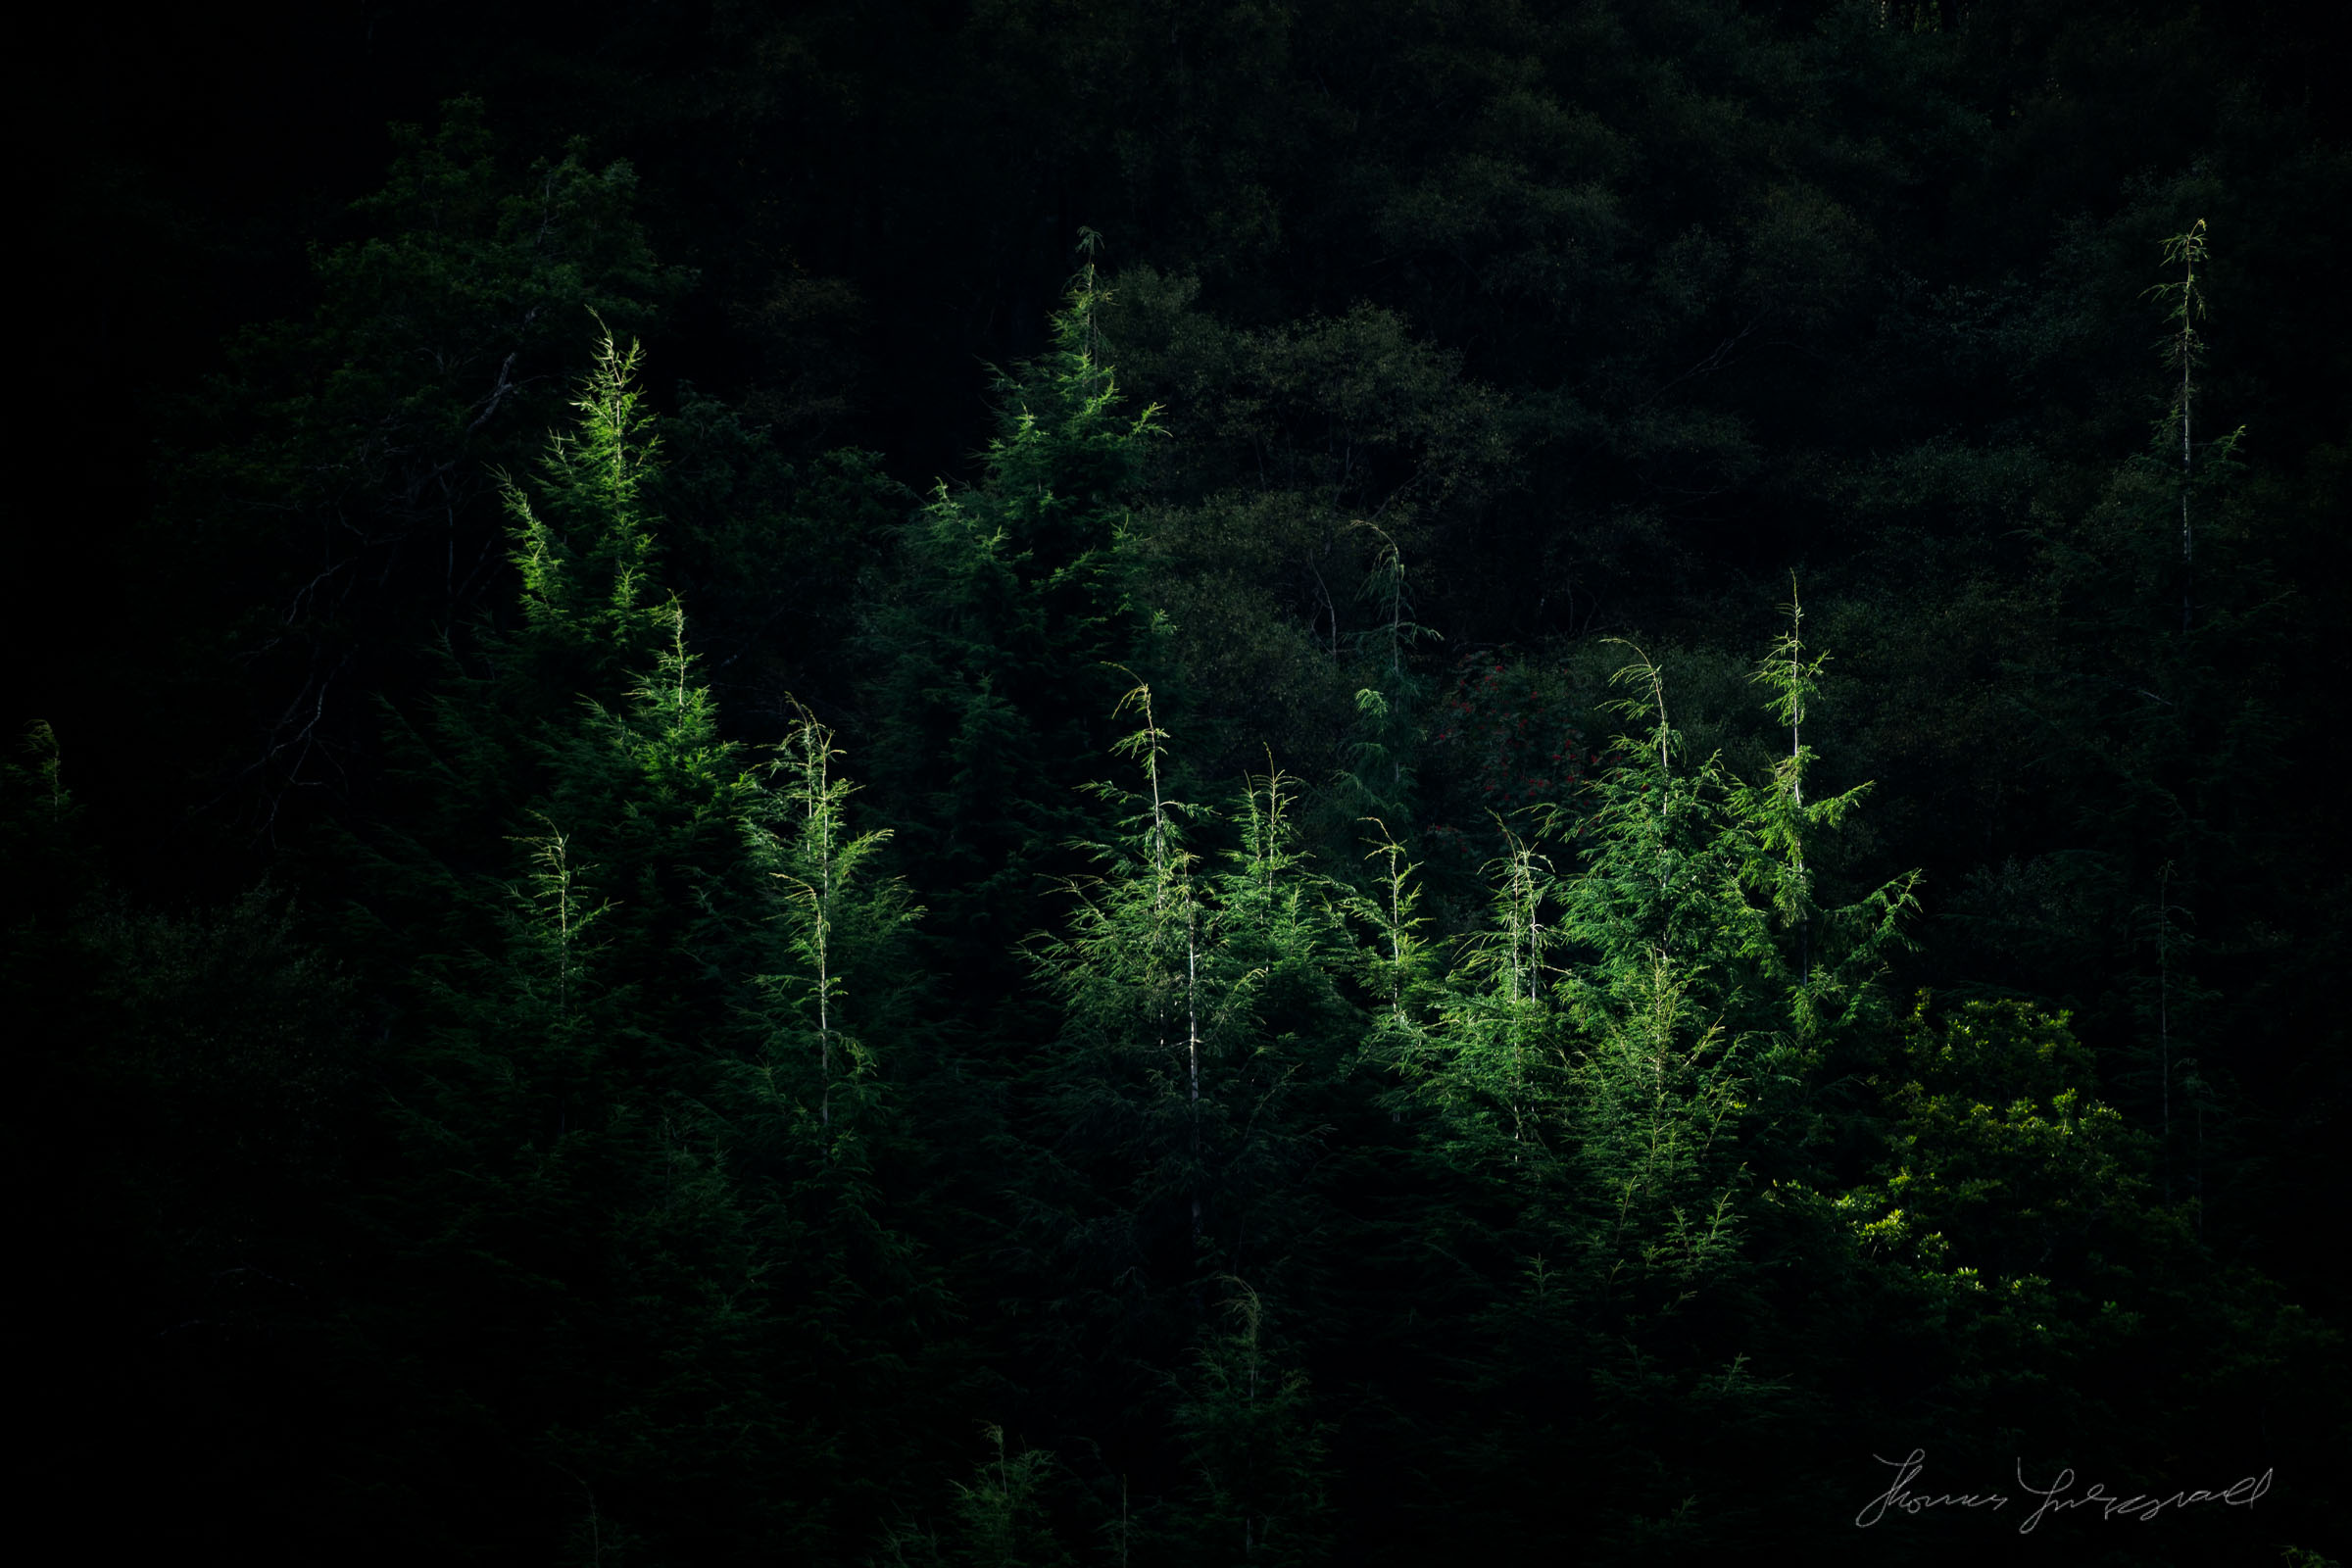 Trees in Glendalough, Ireland , With the Sony A7II